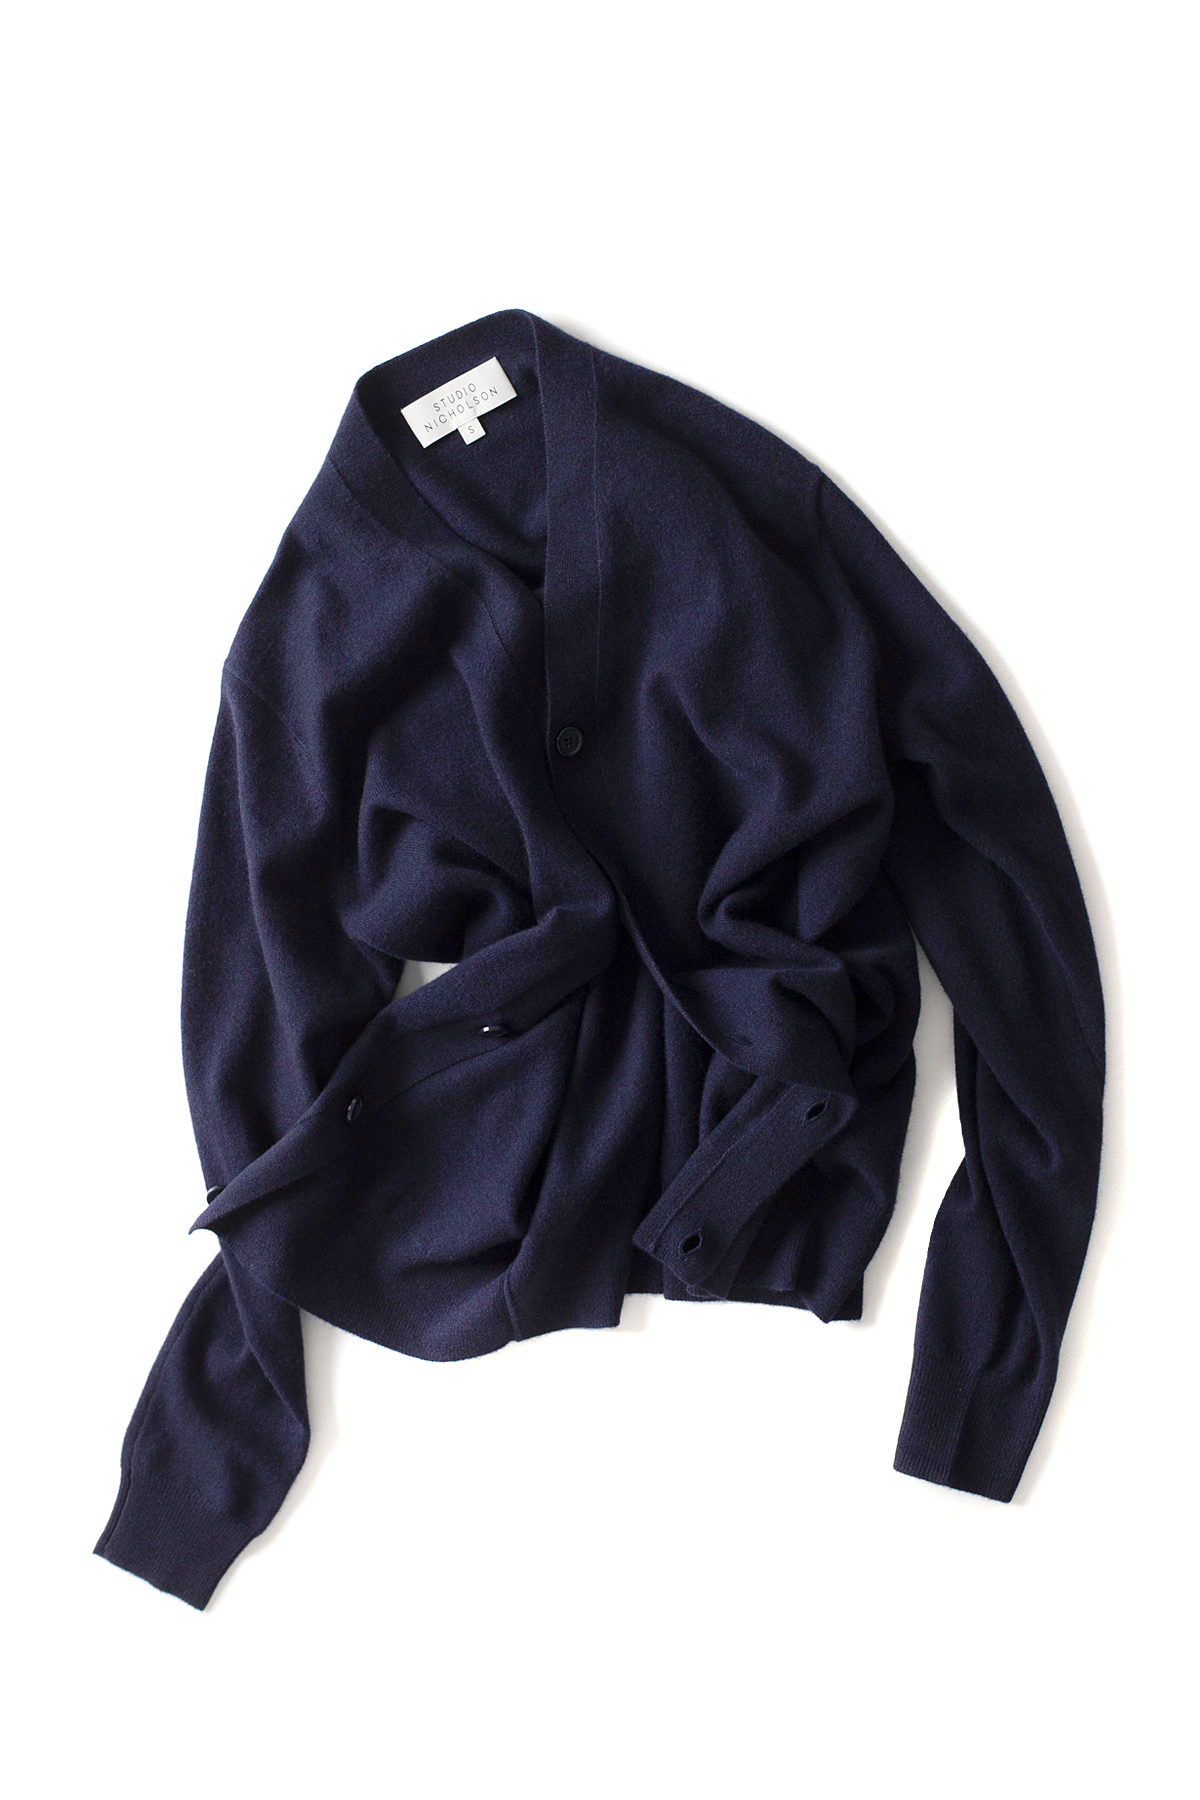 STUDIO NICHOLSON : High Neck Cardigan (Navy)